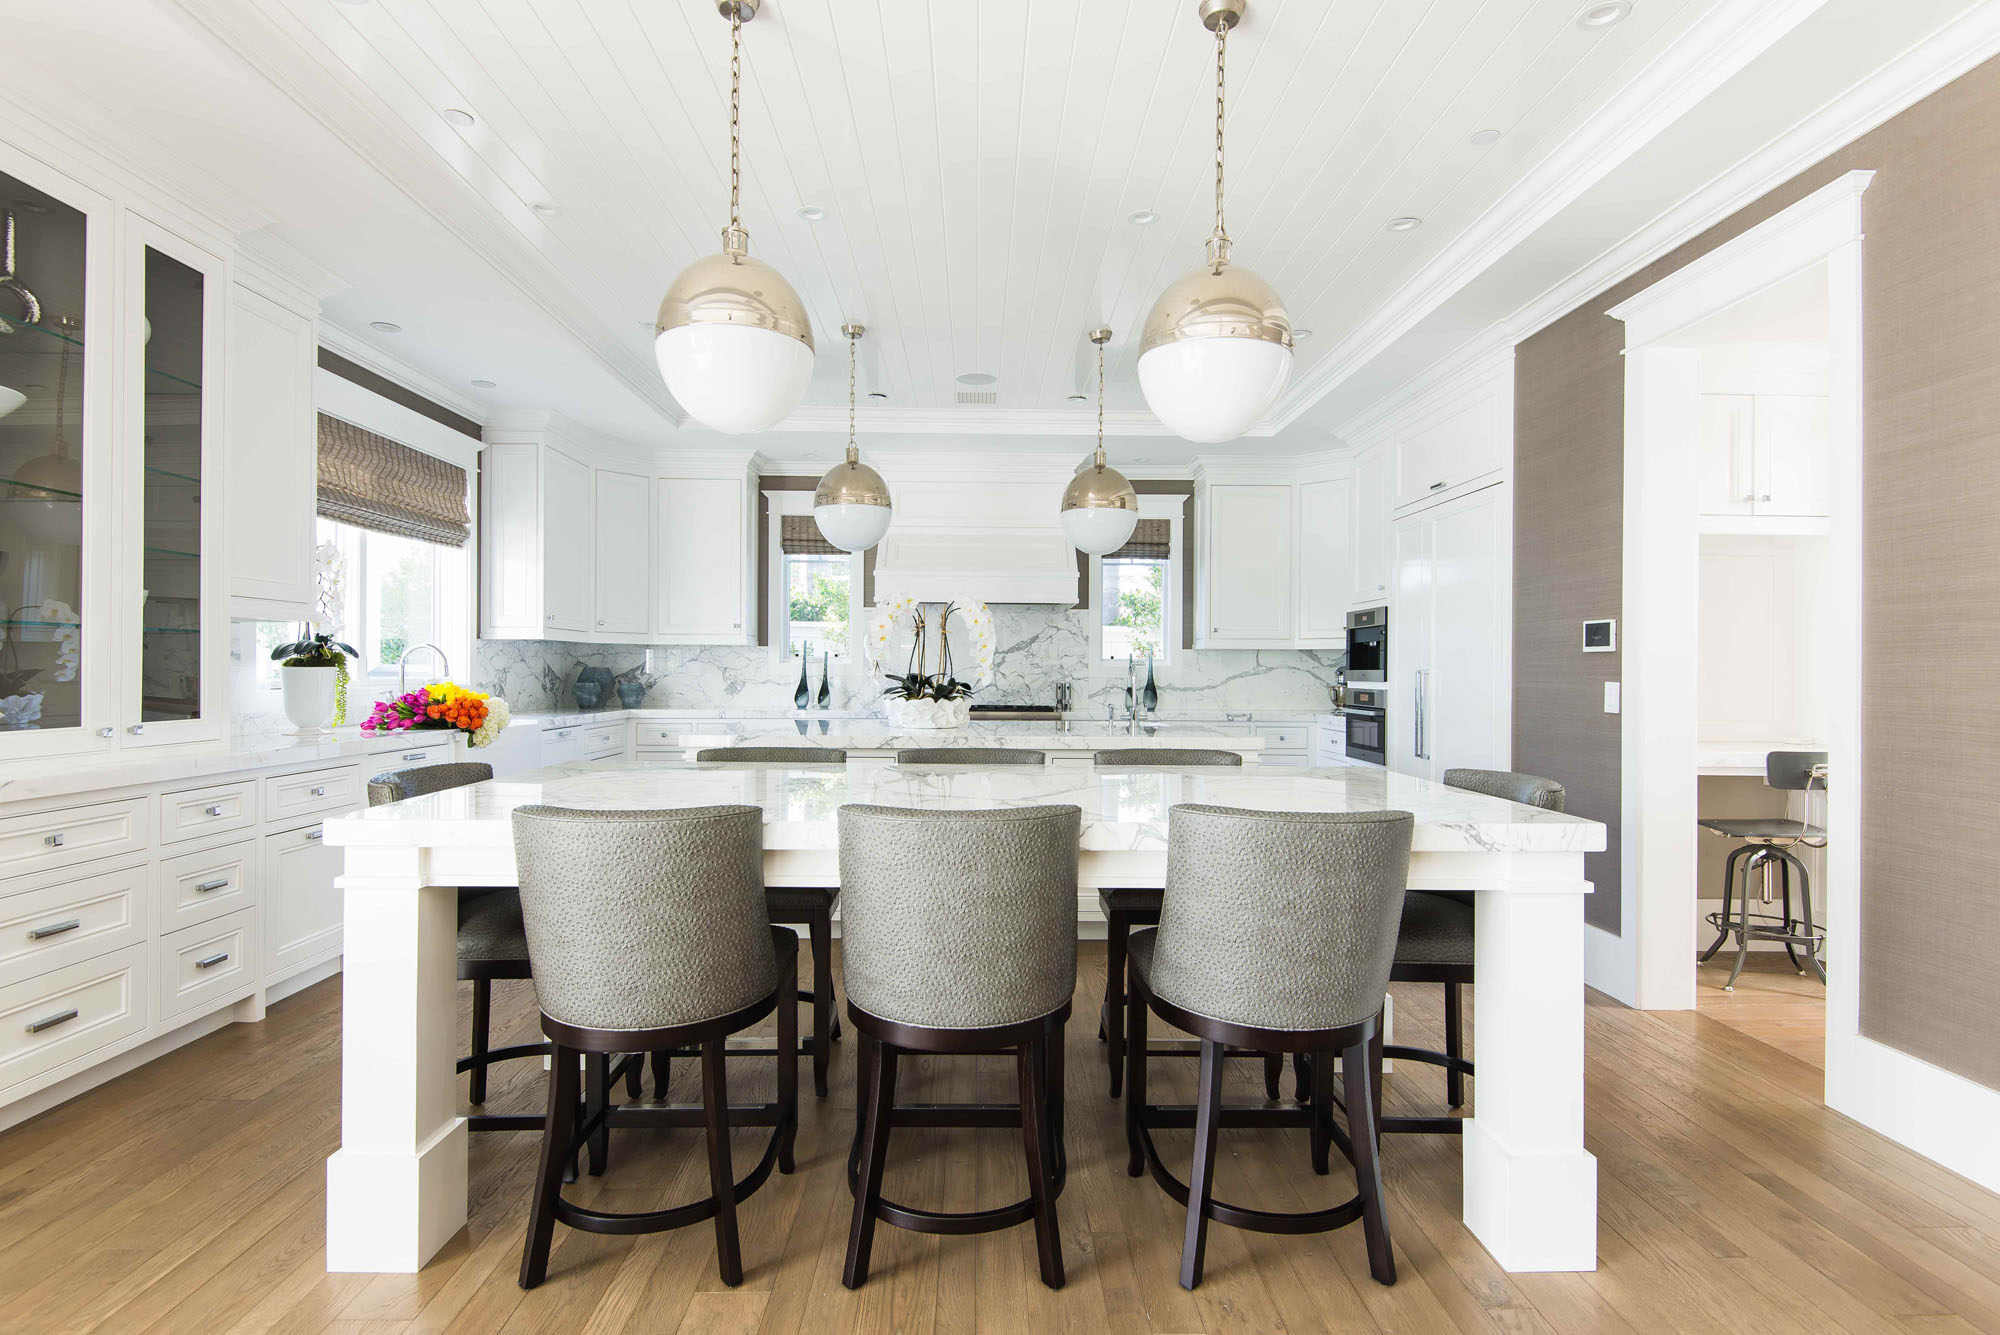 Irvine Terrace - Melissa Morgan Designs